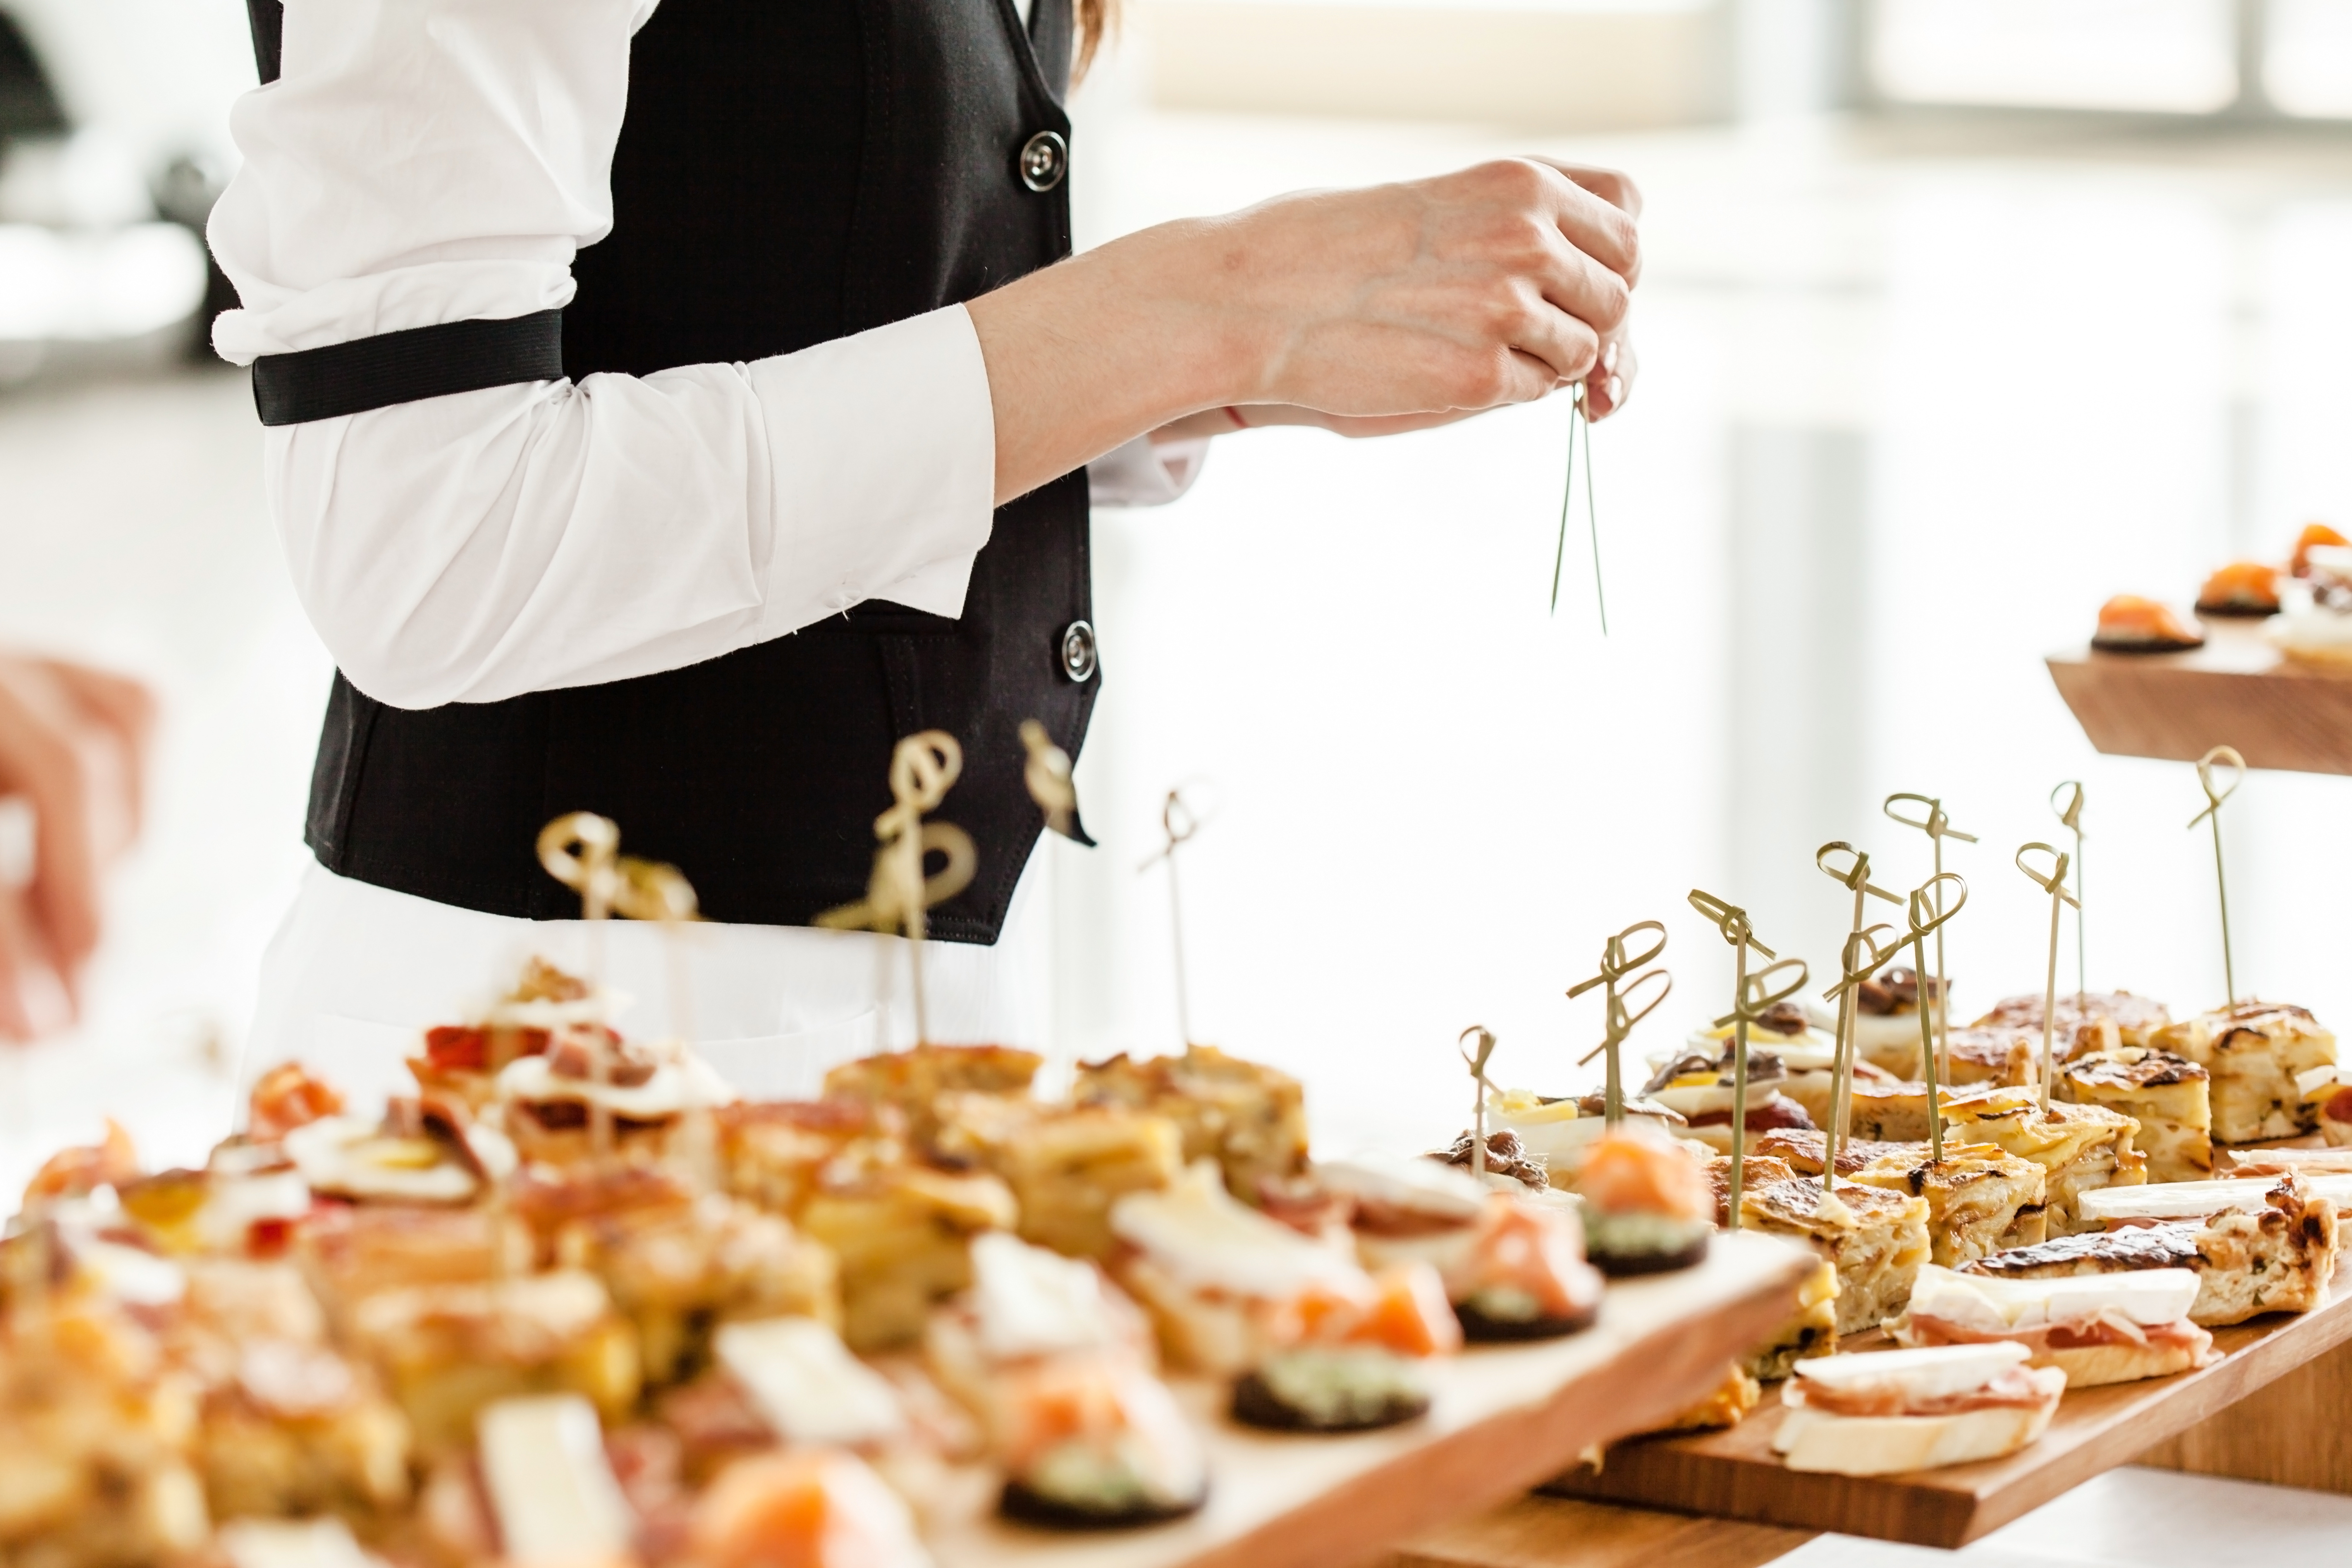 MOUNT CHARLES WINS RTÉ CATERING DEAL